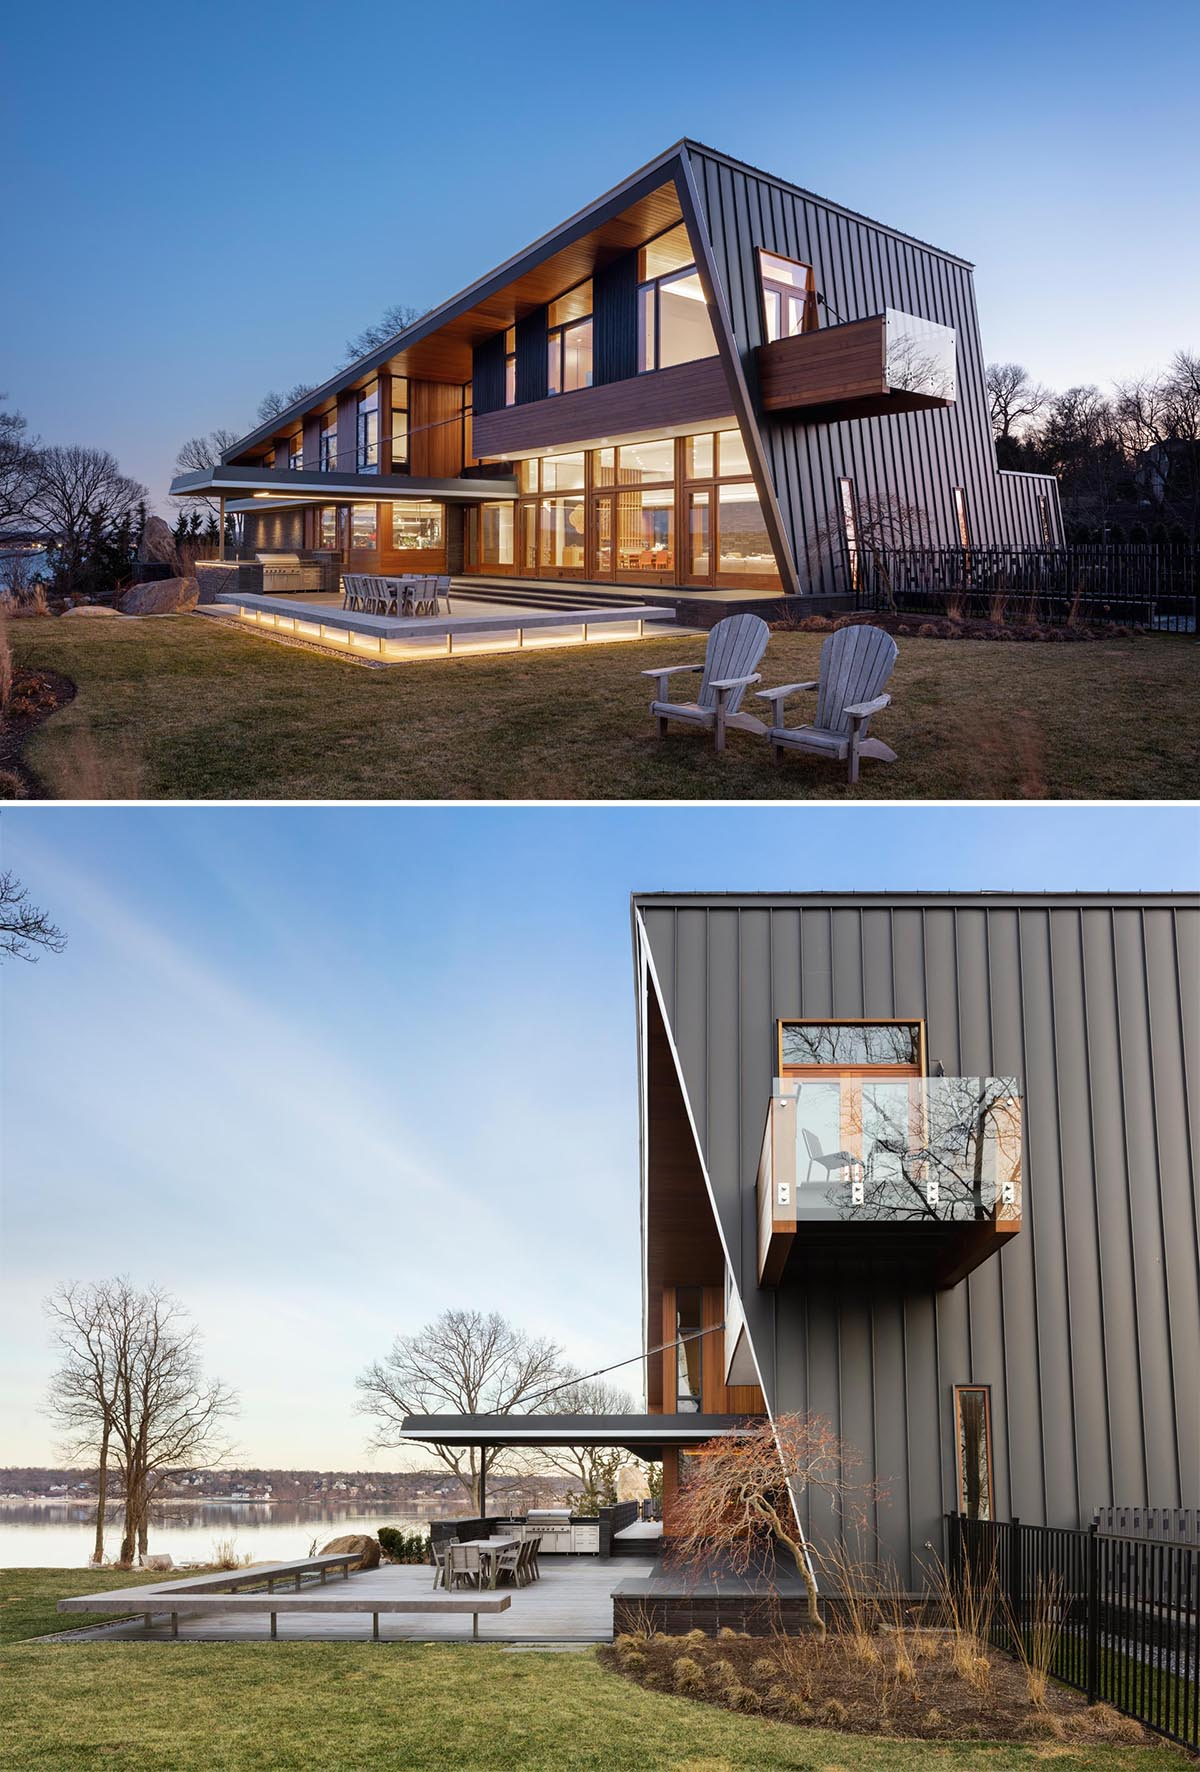 A modern house with a metal roof that flows onto the walls of the home.